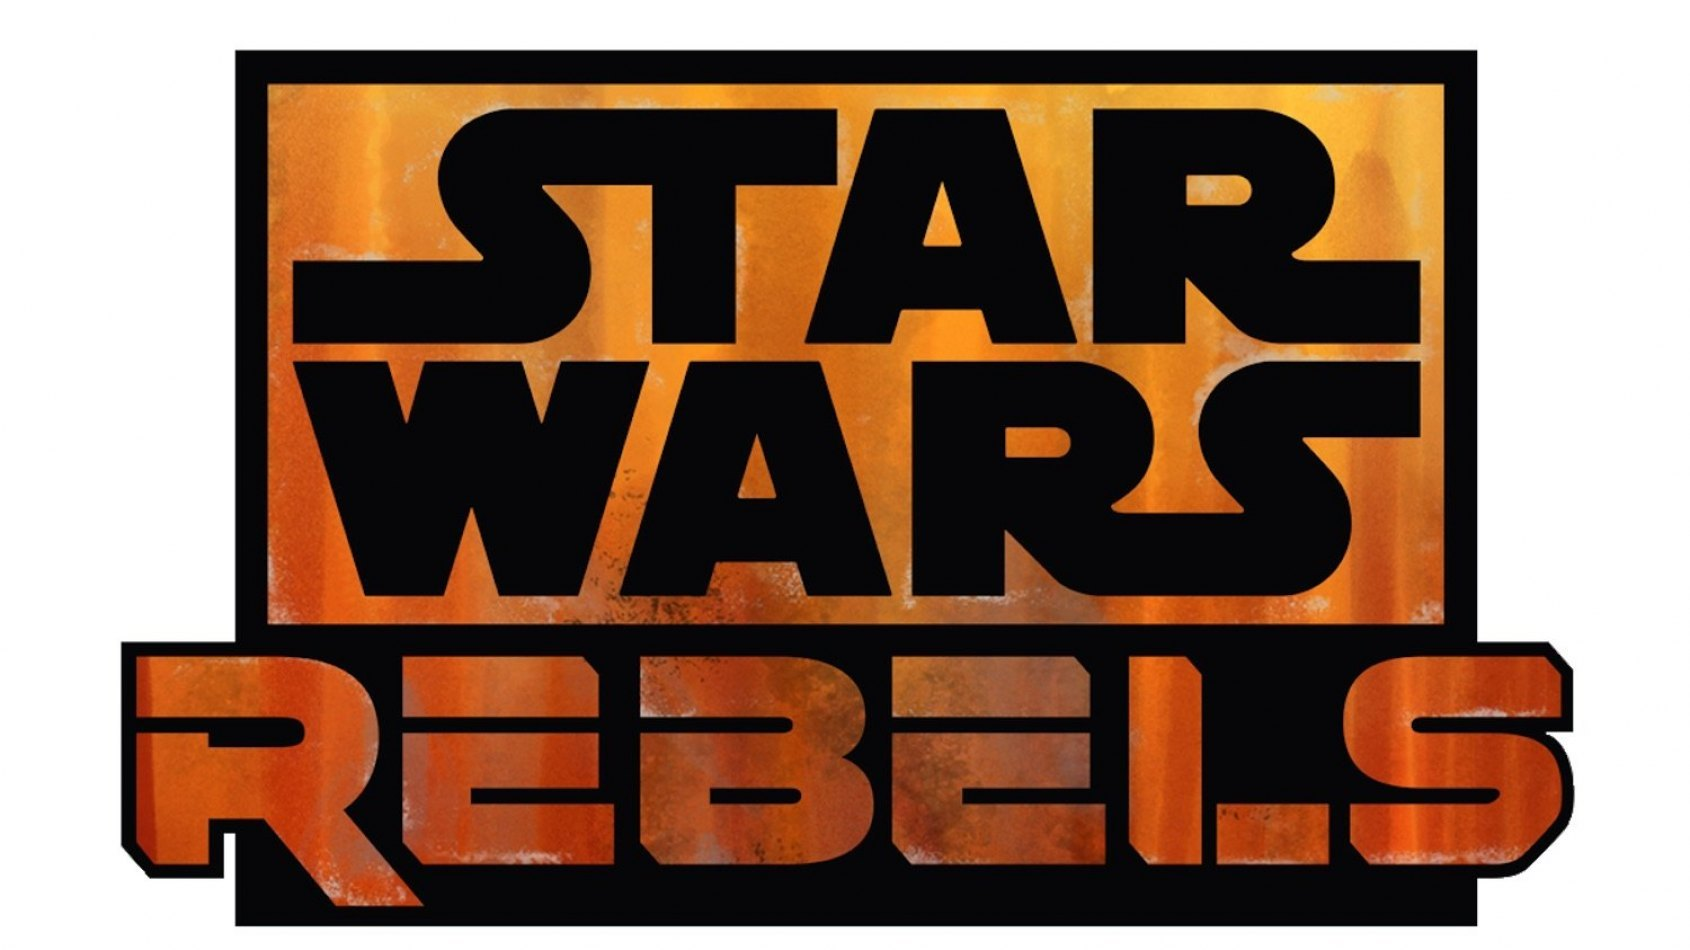 Star Wars Rebels saison 3 et Celebration dans le Star Wars Show #10